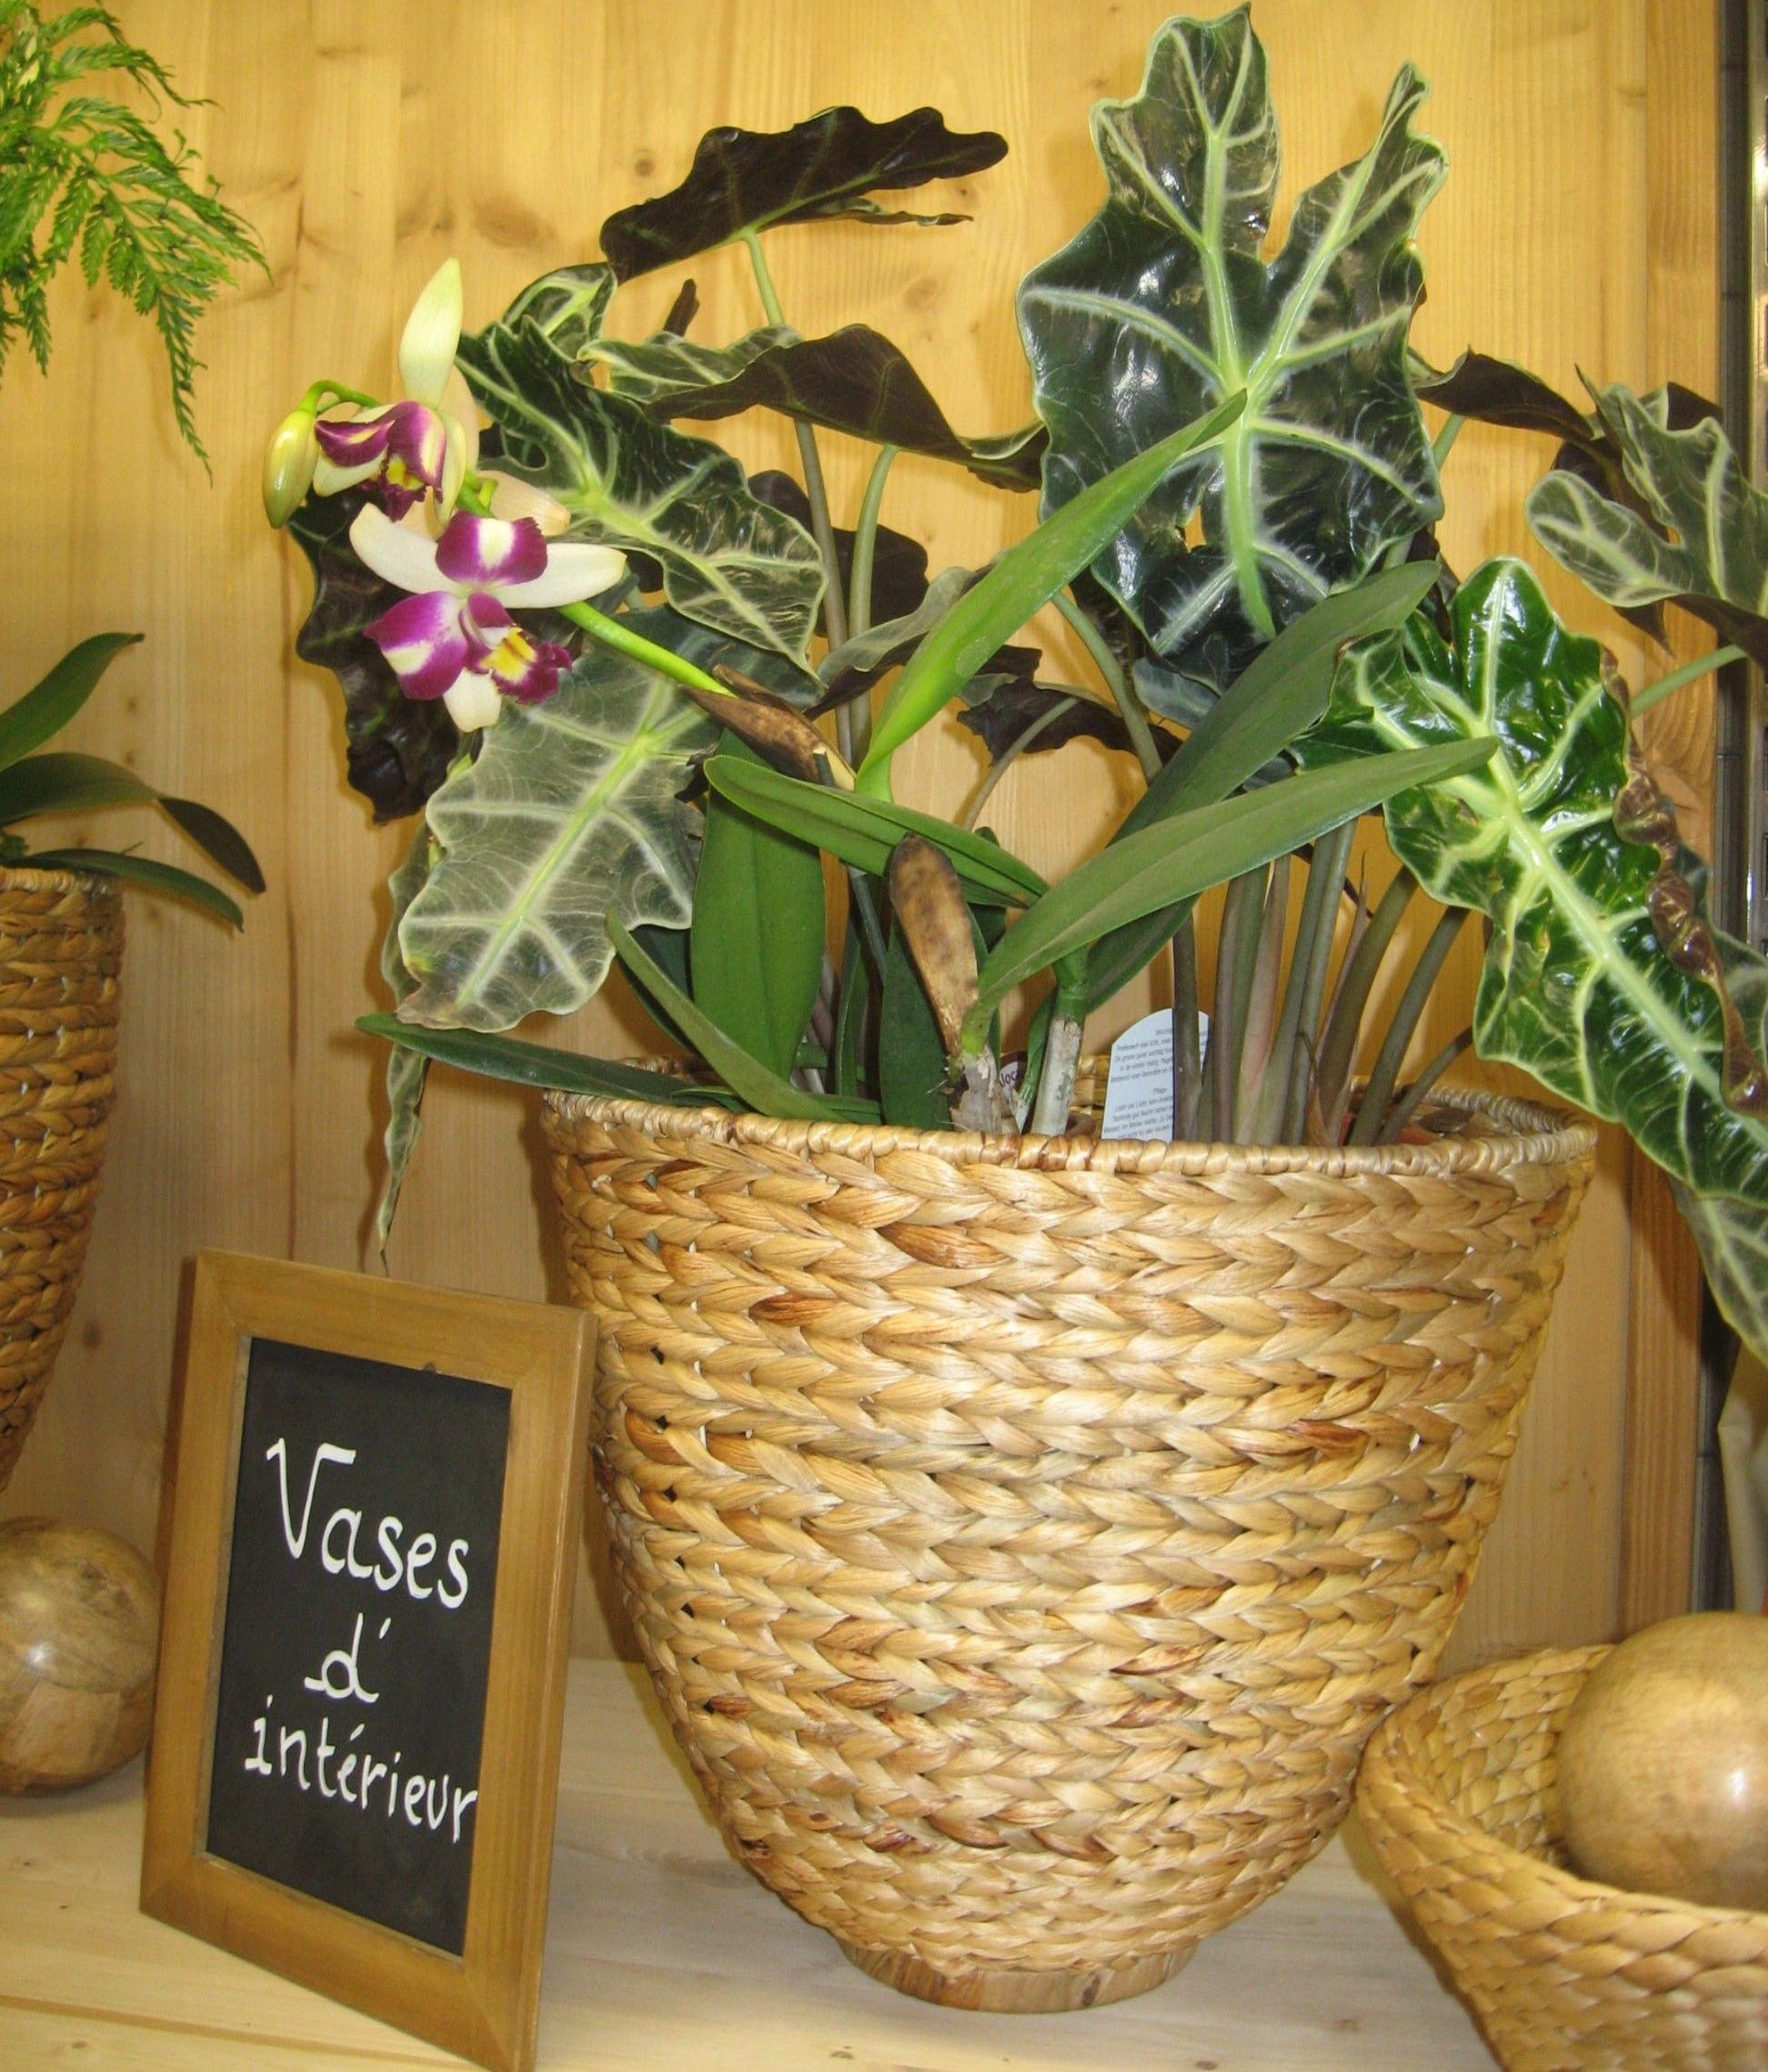 Alocasia and orchid by philippe de stefano indoor vegetal and